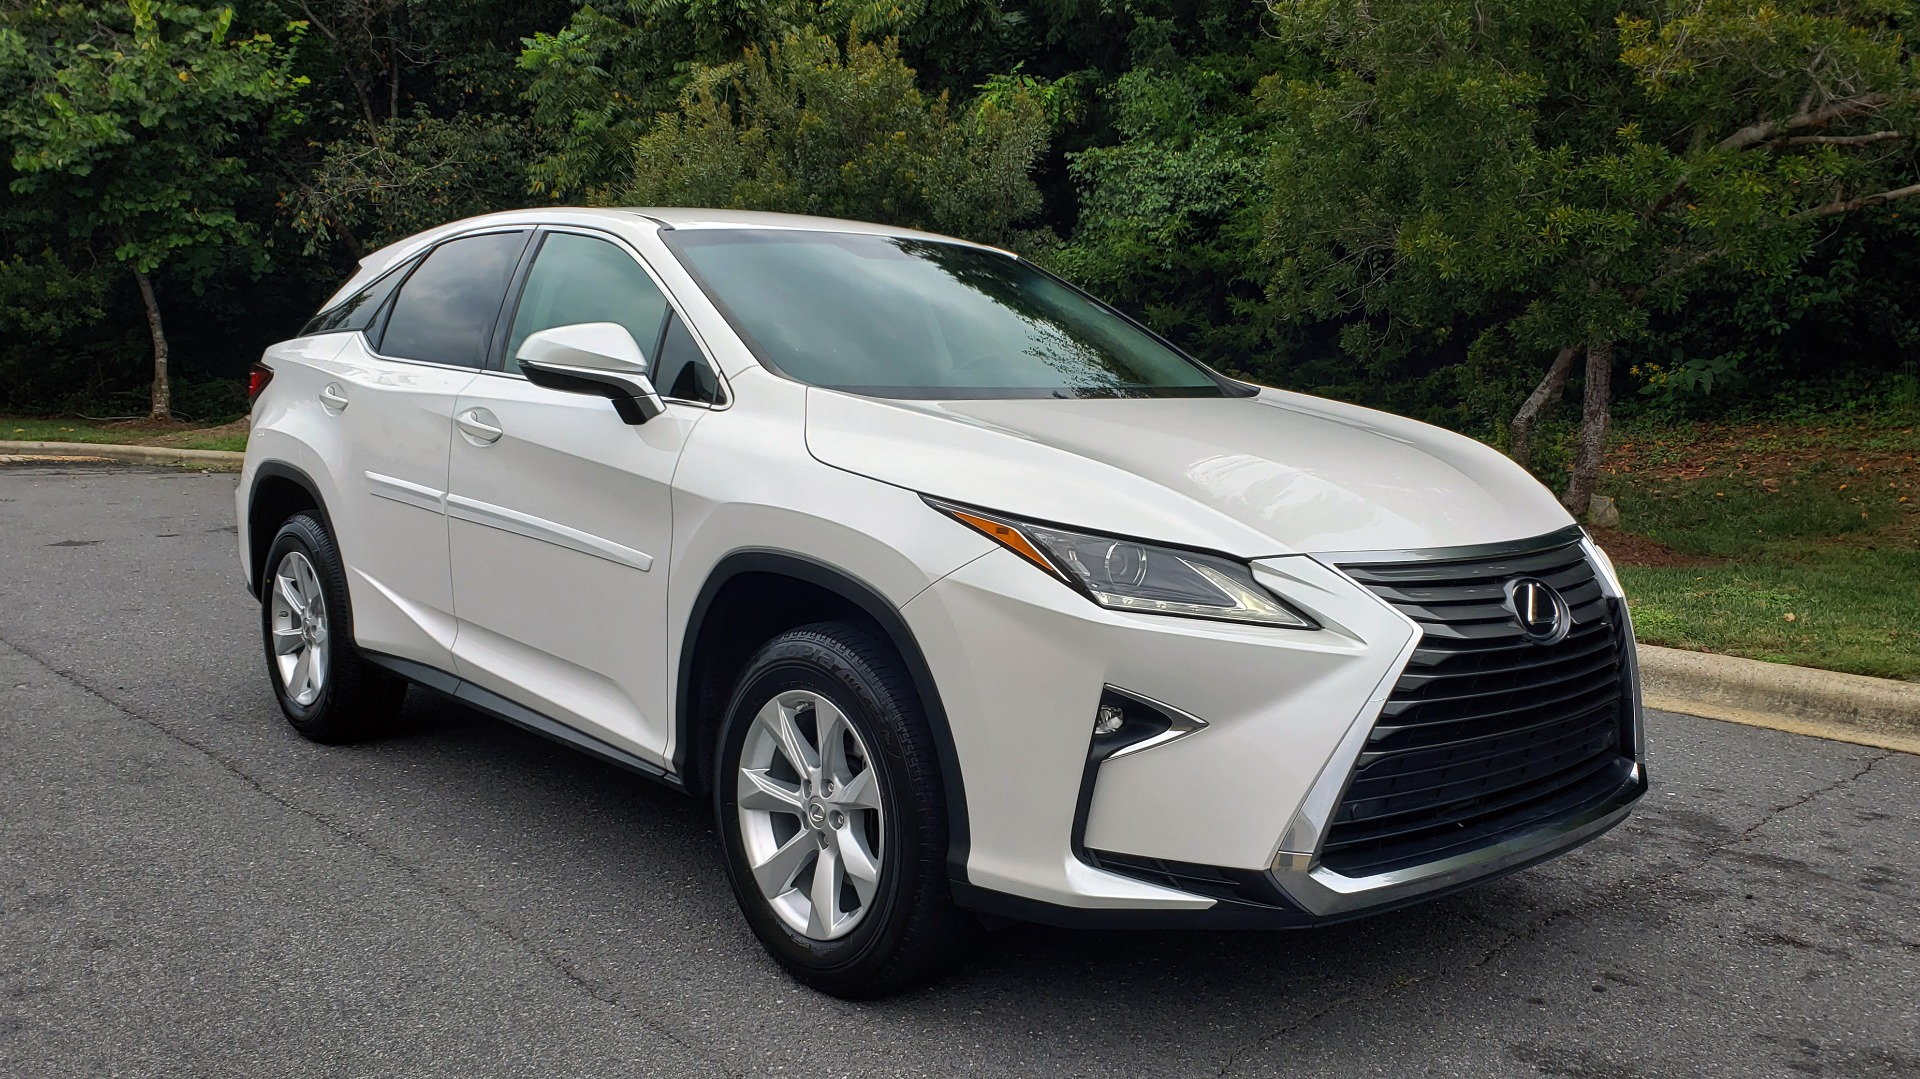 Used 2016 Lexus RX 350 FWD / 4-DR / 3.5L V6 / 8-SPD AUTO / LEATHER / REARVIEW for sale Sold at Formula Imports in Charlotte NC 28227 8